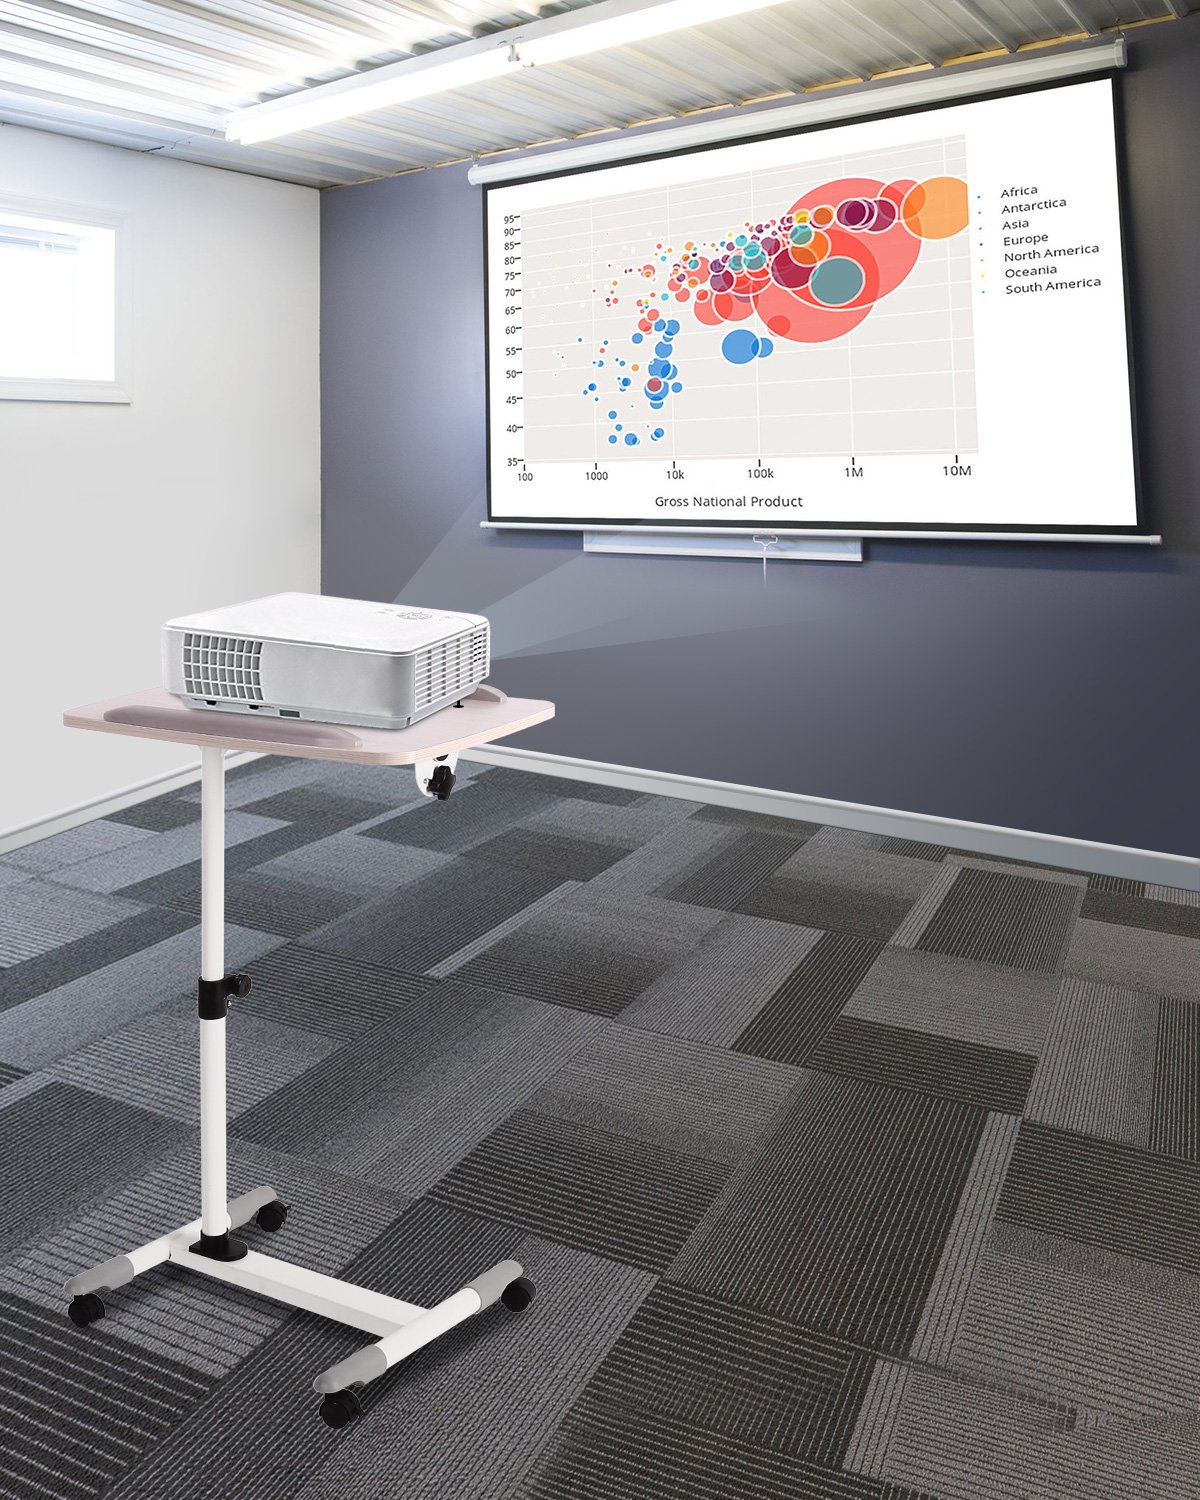 ProHT Universal Mobile Projector Laptop Stand Trolley (05485A),Sit-Stand Laptop Desk Cart,Adjustable Projector Stand/Rolling Computer Stand/Presentation Cart Rotated 360° and Tilted up to 35° .White by ProHT (Image #9)